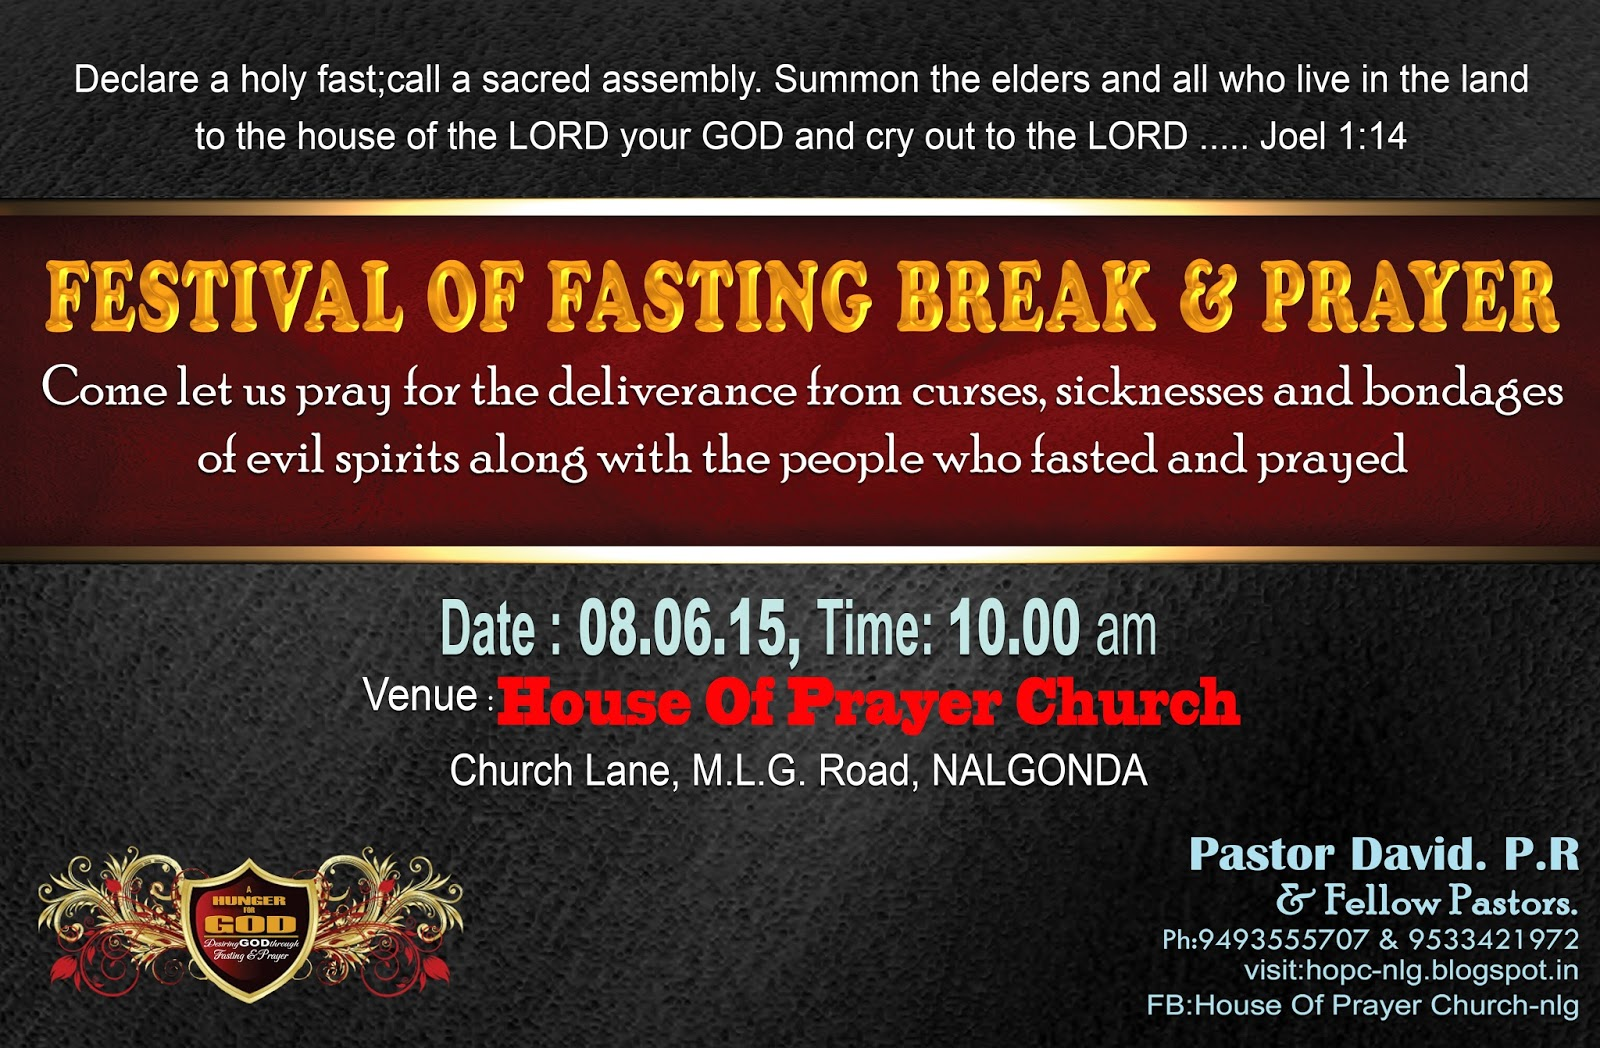 House of prayer church nlg invitation festival of fasting break here is my special invitation to all my fb friendslooking forward to meeting you in the festival god be with you all the time altavistaventures Choice Image